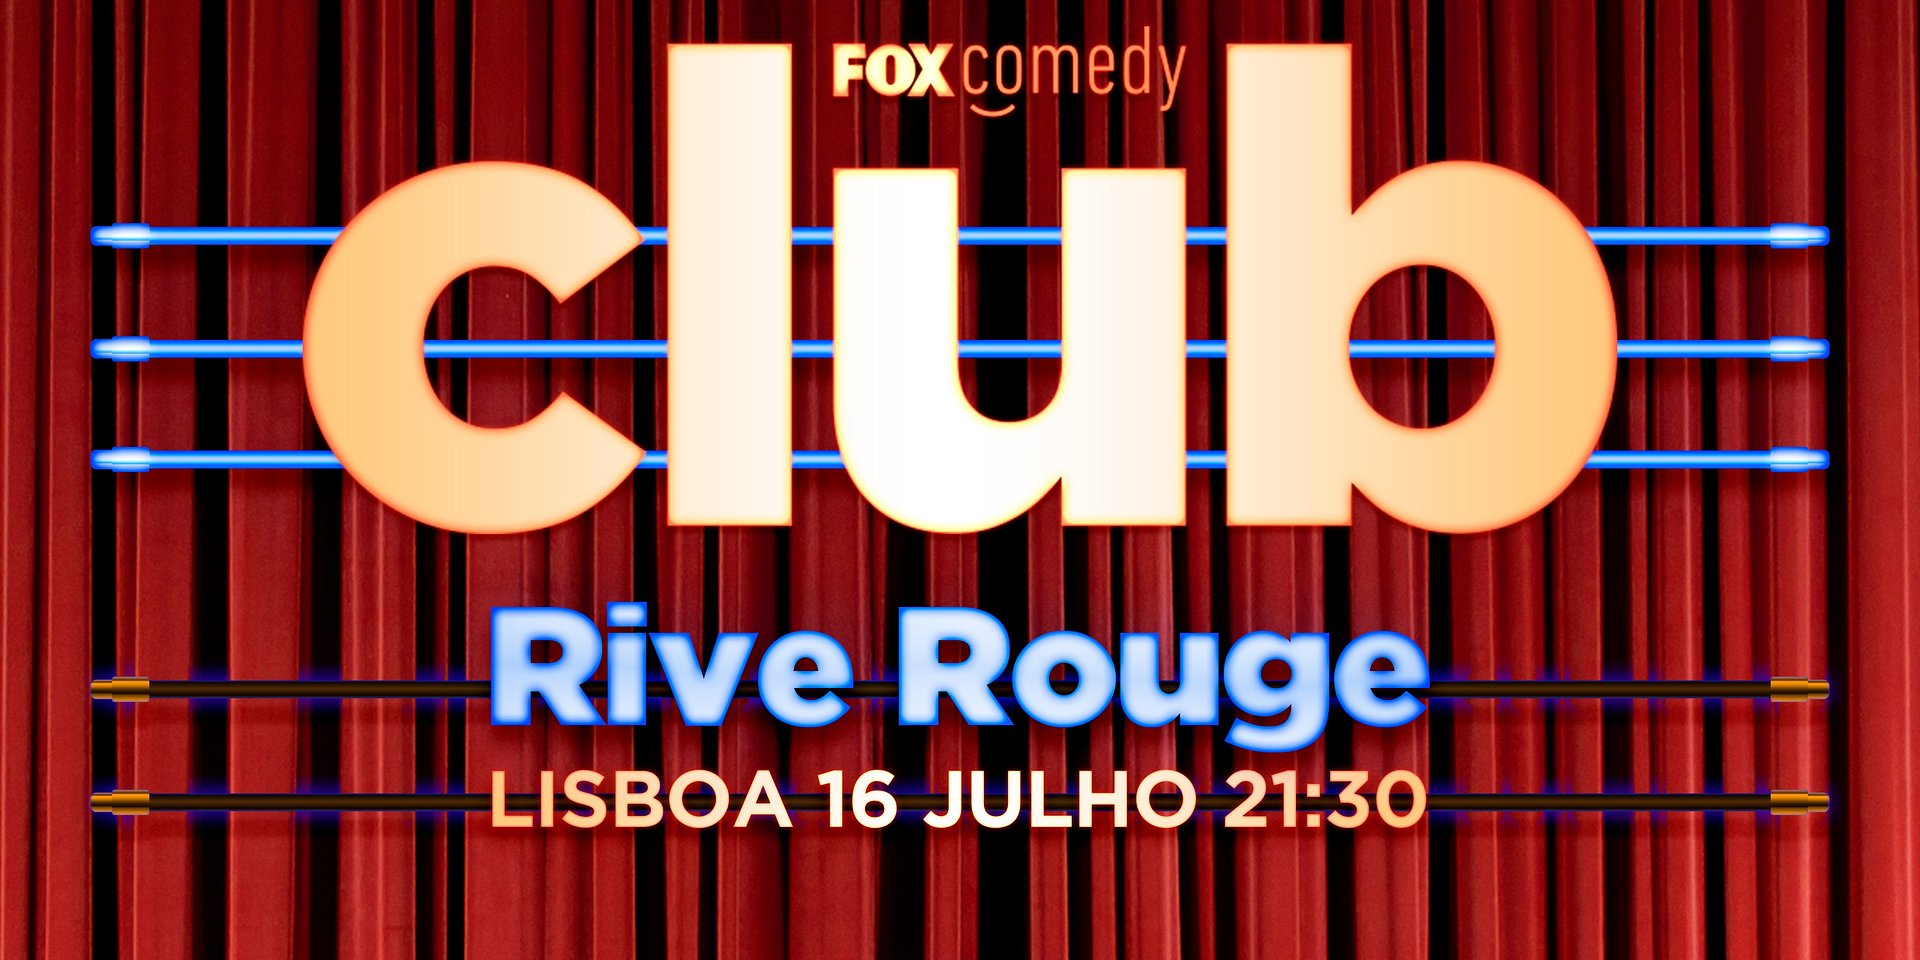 O SEGUNDO ESPETÁCULO DO FOX COMEDY CLUB COM STAND UP AO VIVO É JÁ AMANHÃ